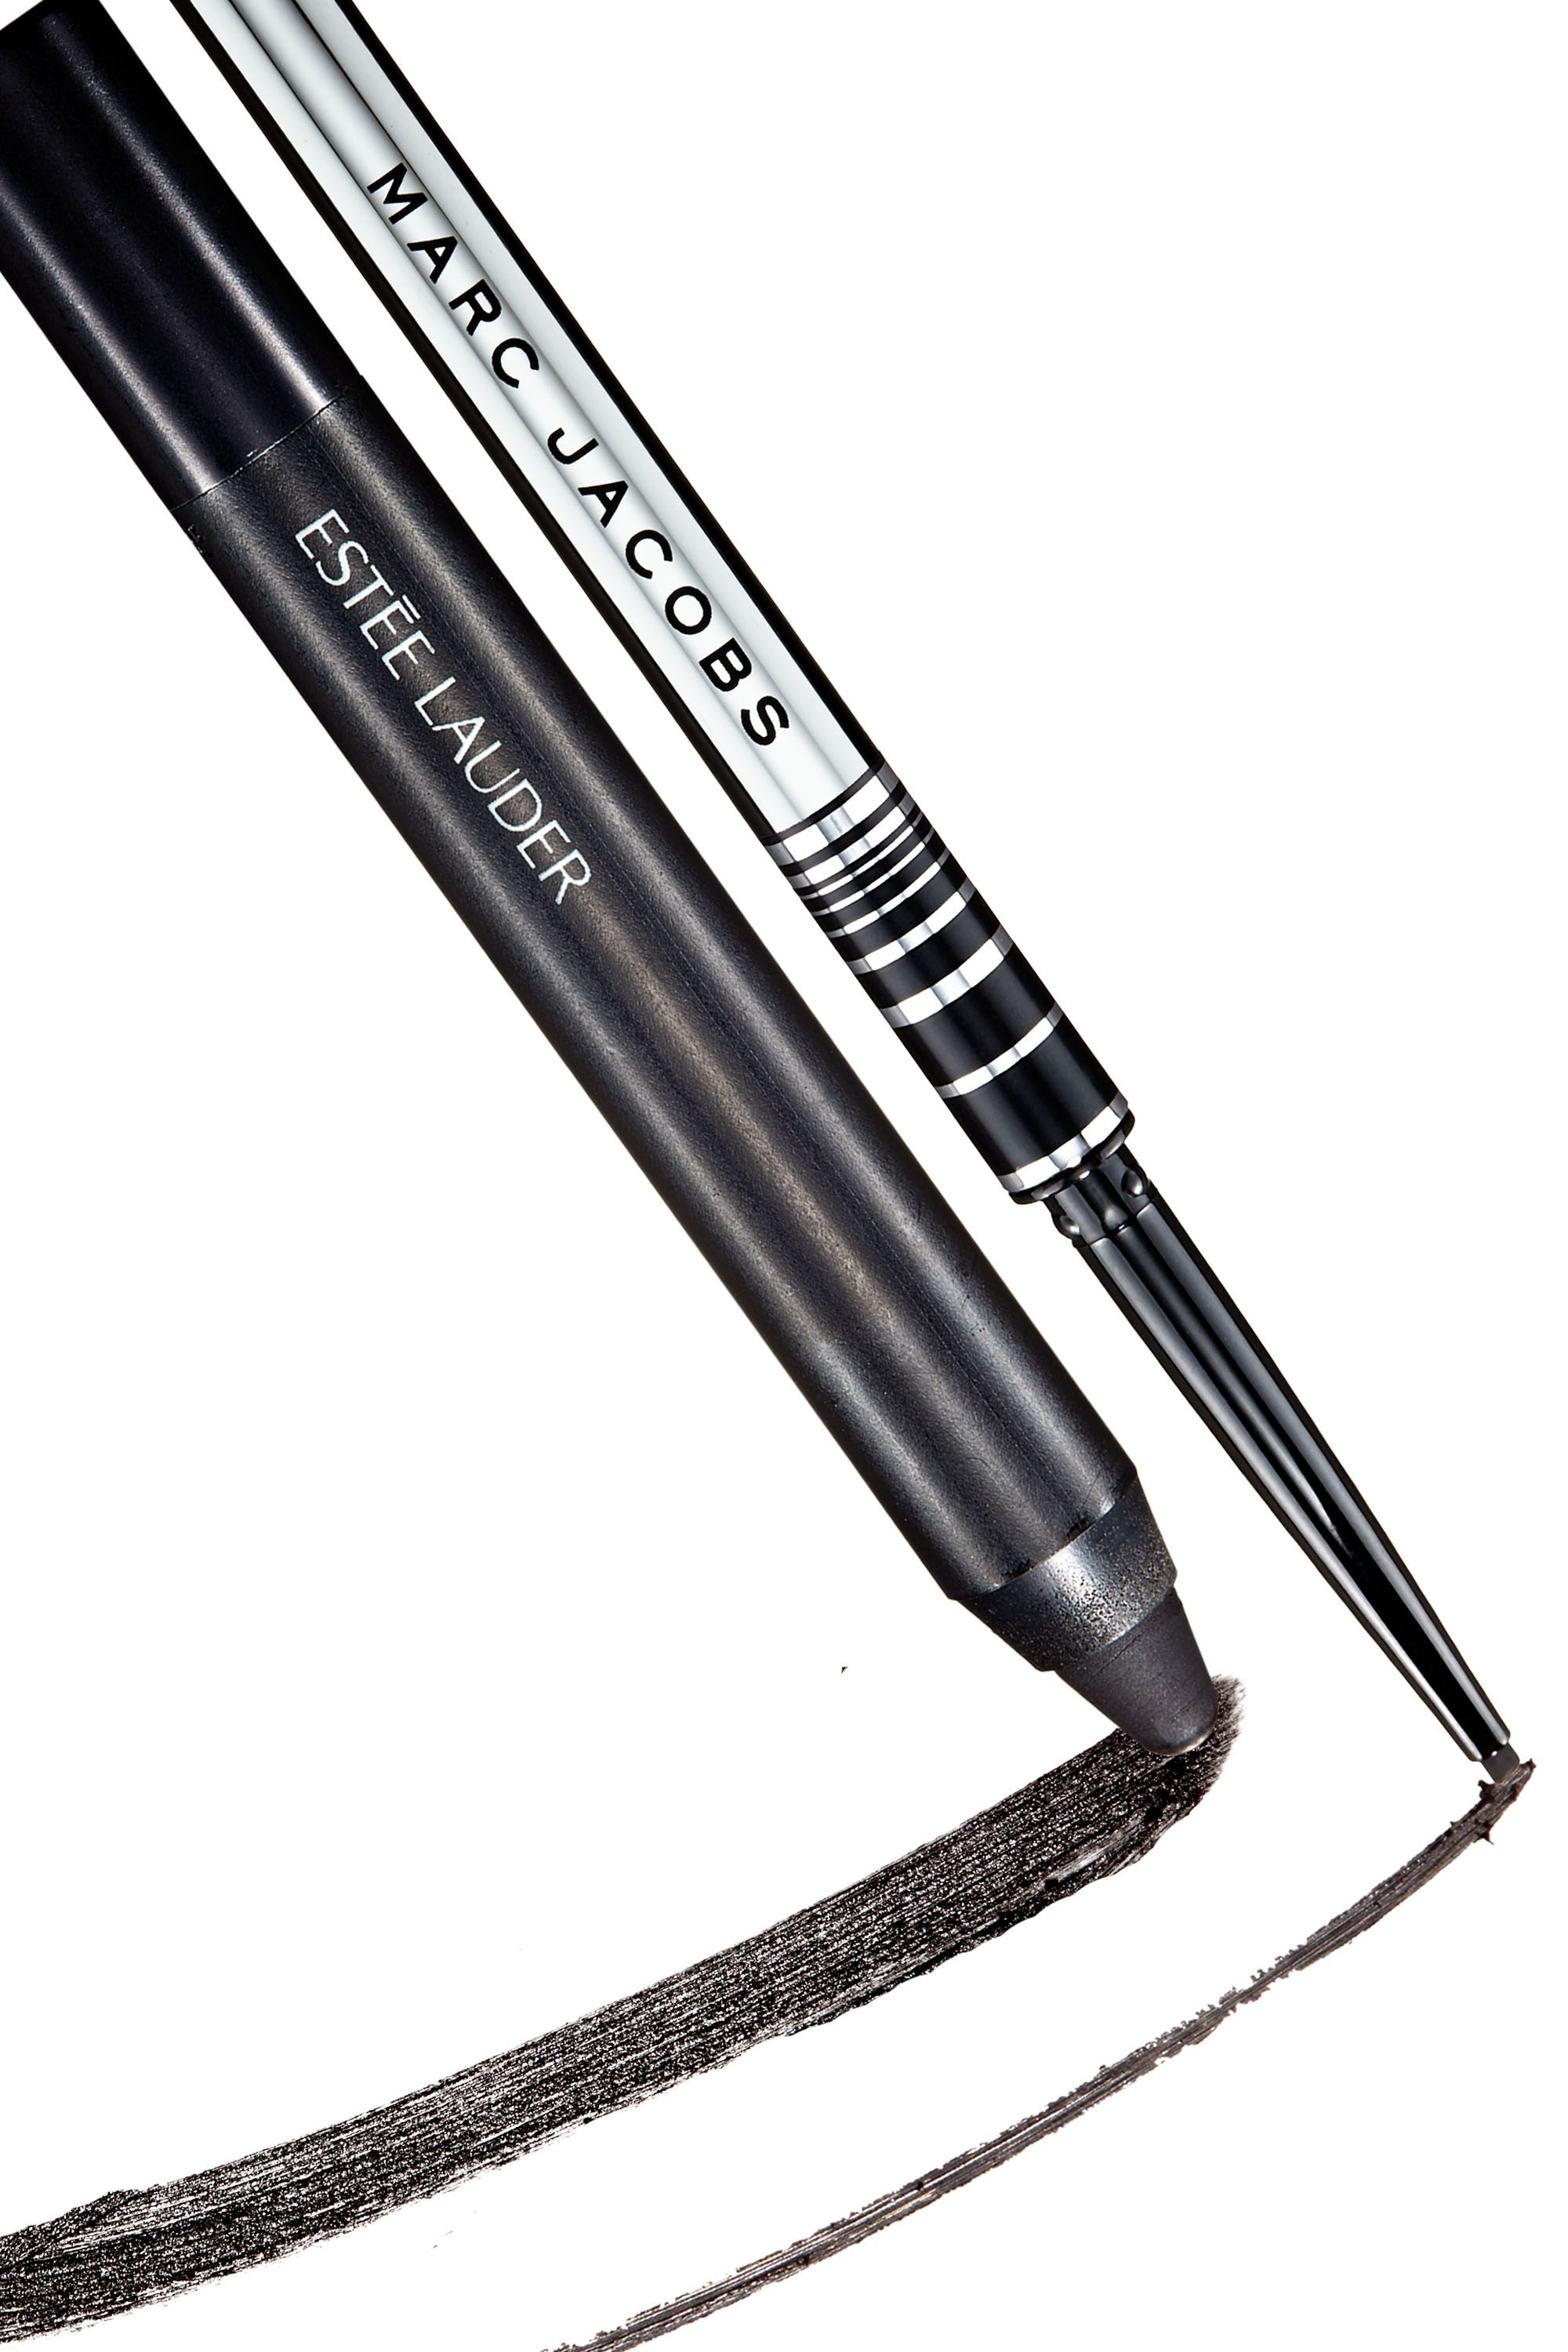 "<p><strong>Estée Lauder</strong> SuperNoir Shadow & Liner in Blackest Black, $23, <a href=""https://www.esteelauder.com/product/631/39722/Product-Catalog/Makeup/SuperNoir/Shadow-Liner"" target=""_blank"">esteelauder.com</a>; <span></span><strong>Marc Jacobs Beauty </strong>Fineliner Ultra-Skinny Gel Eye Crayon in Blacquer, $24, <a href=""http://www.sephora.com/fineliner-ultra-skinny-gel-eye-crayon-eyeliner-P404247"" target=""_blank"">sephora.com</a>. </p>"